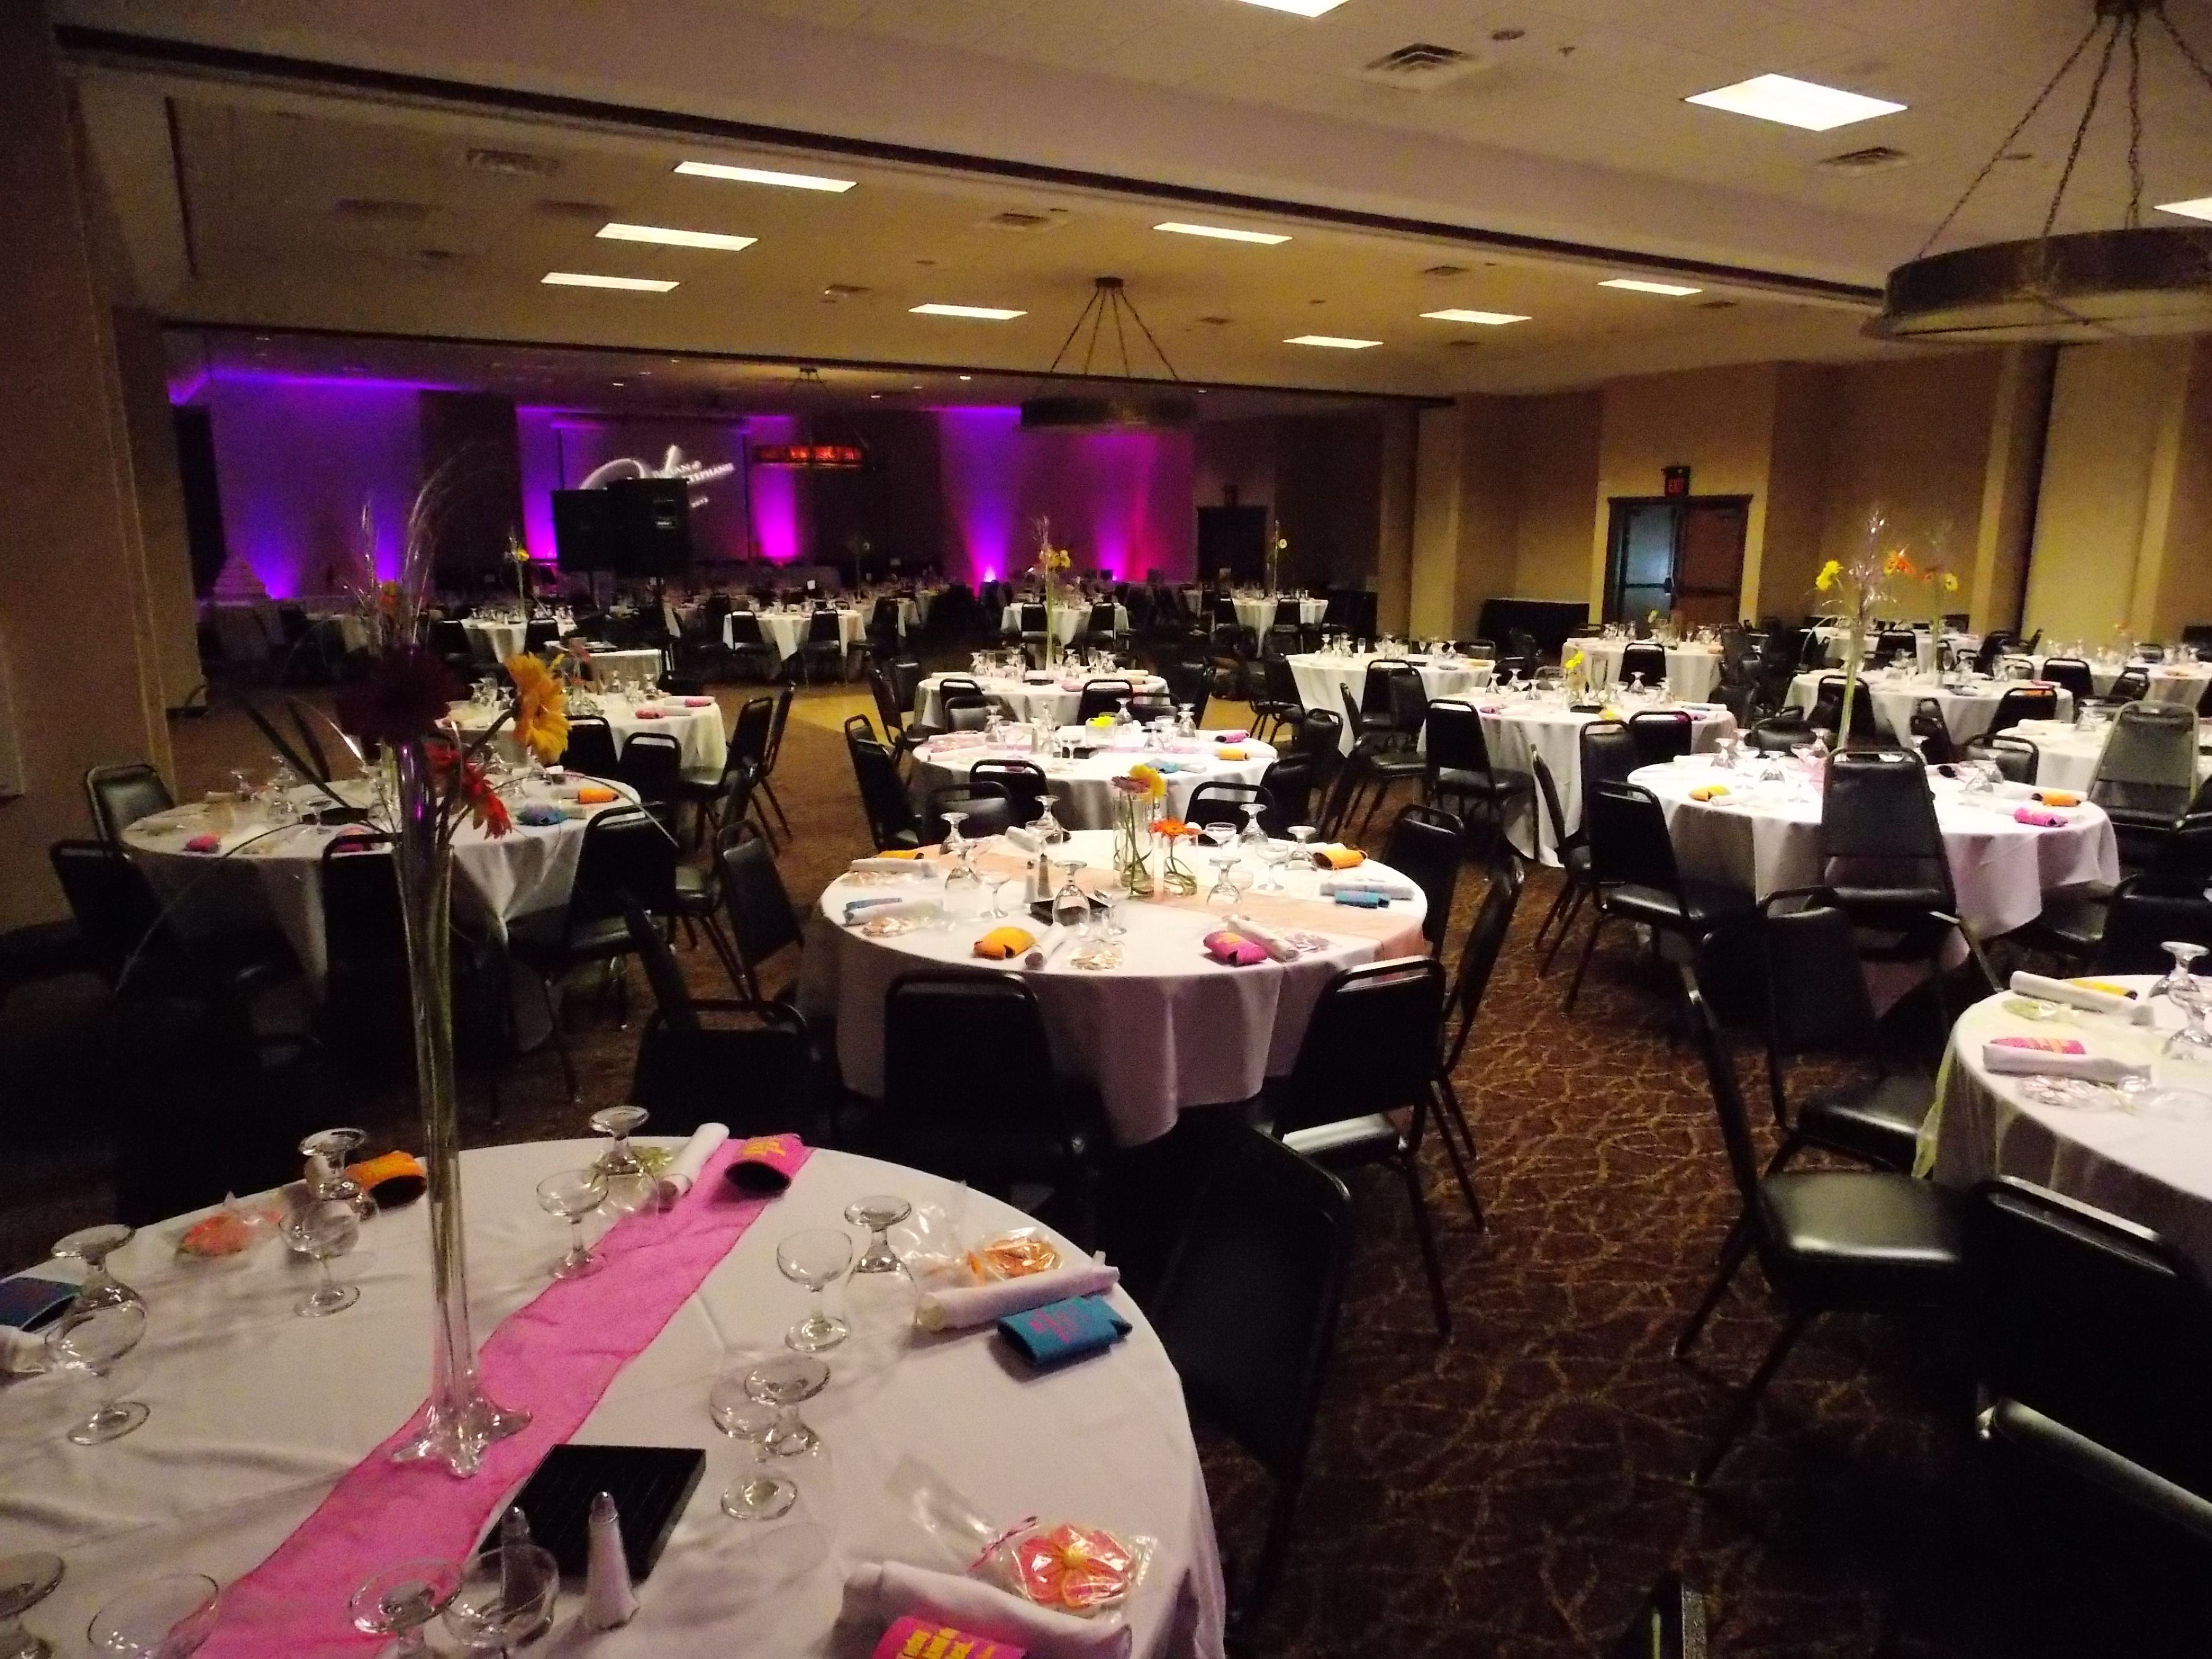 A View Of The Banquet Room At Stoney Creek Inn Moline Illinois Up Lighting By Marske Music Productions Www Marskemusic Com Moline Banquet Hall Room Decor